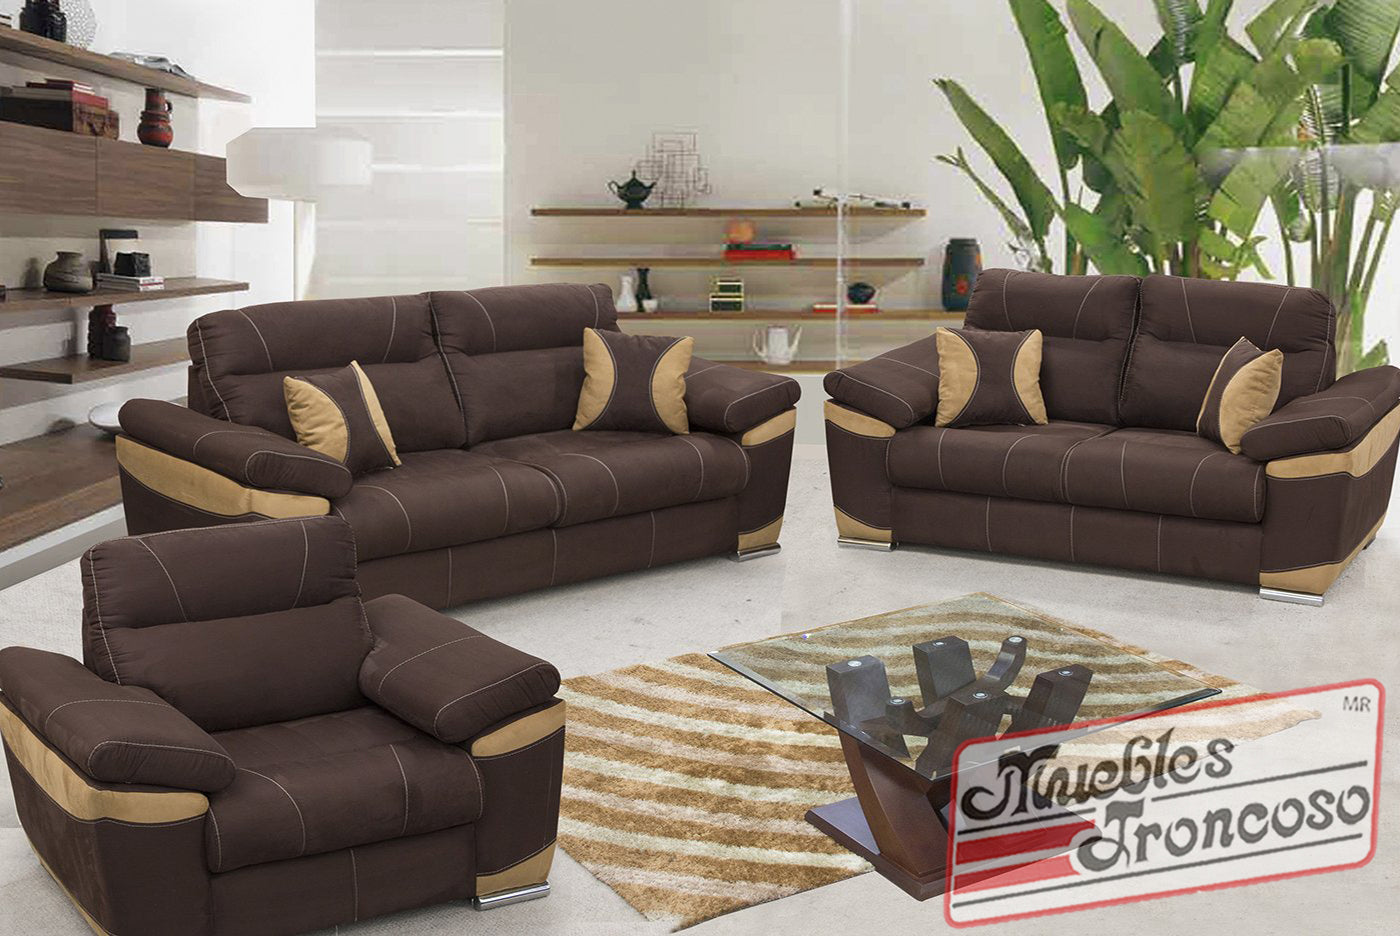 Sala panama chocolate muebles troncoso for Paredes grises y muebles marrones